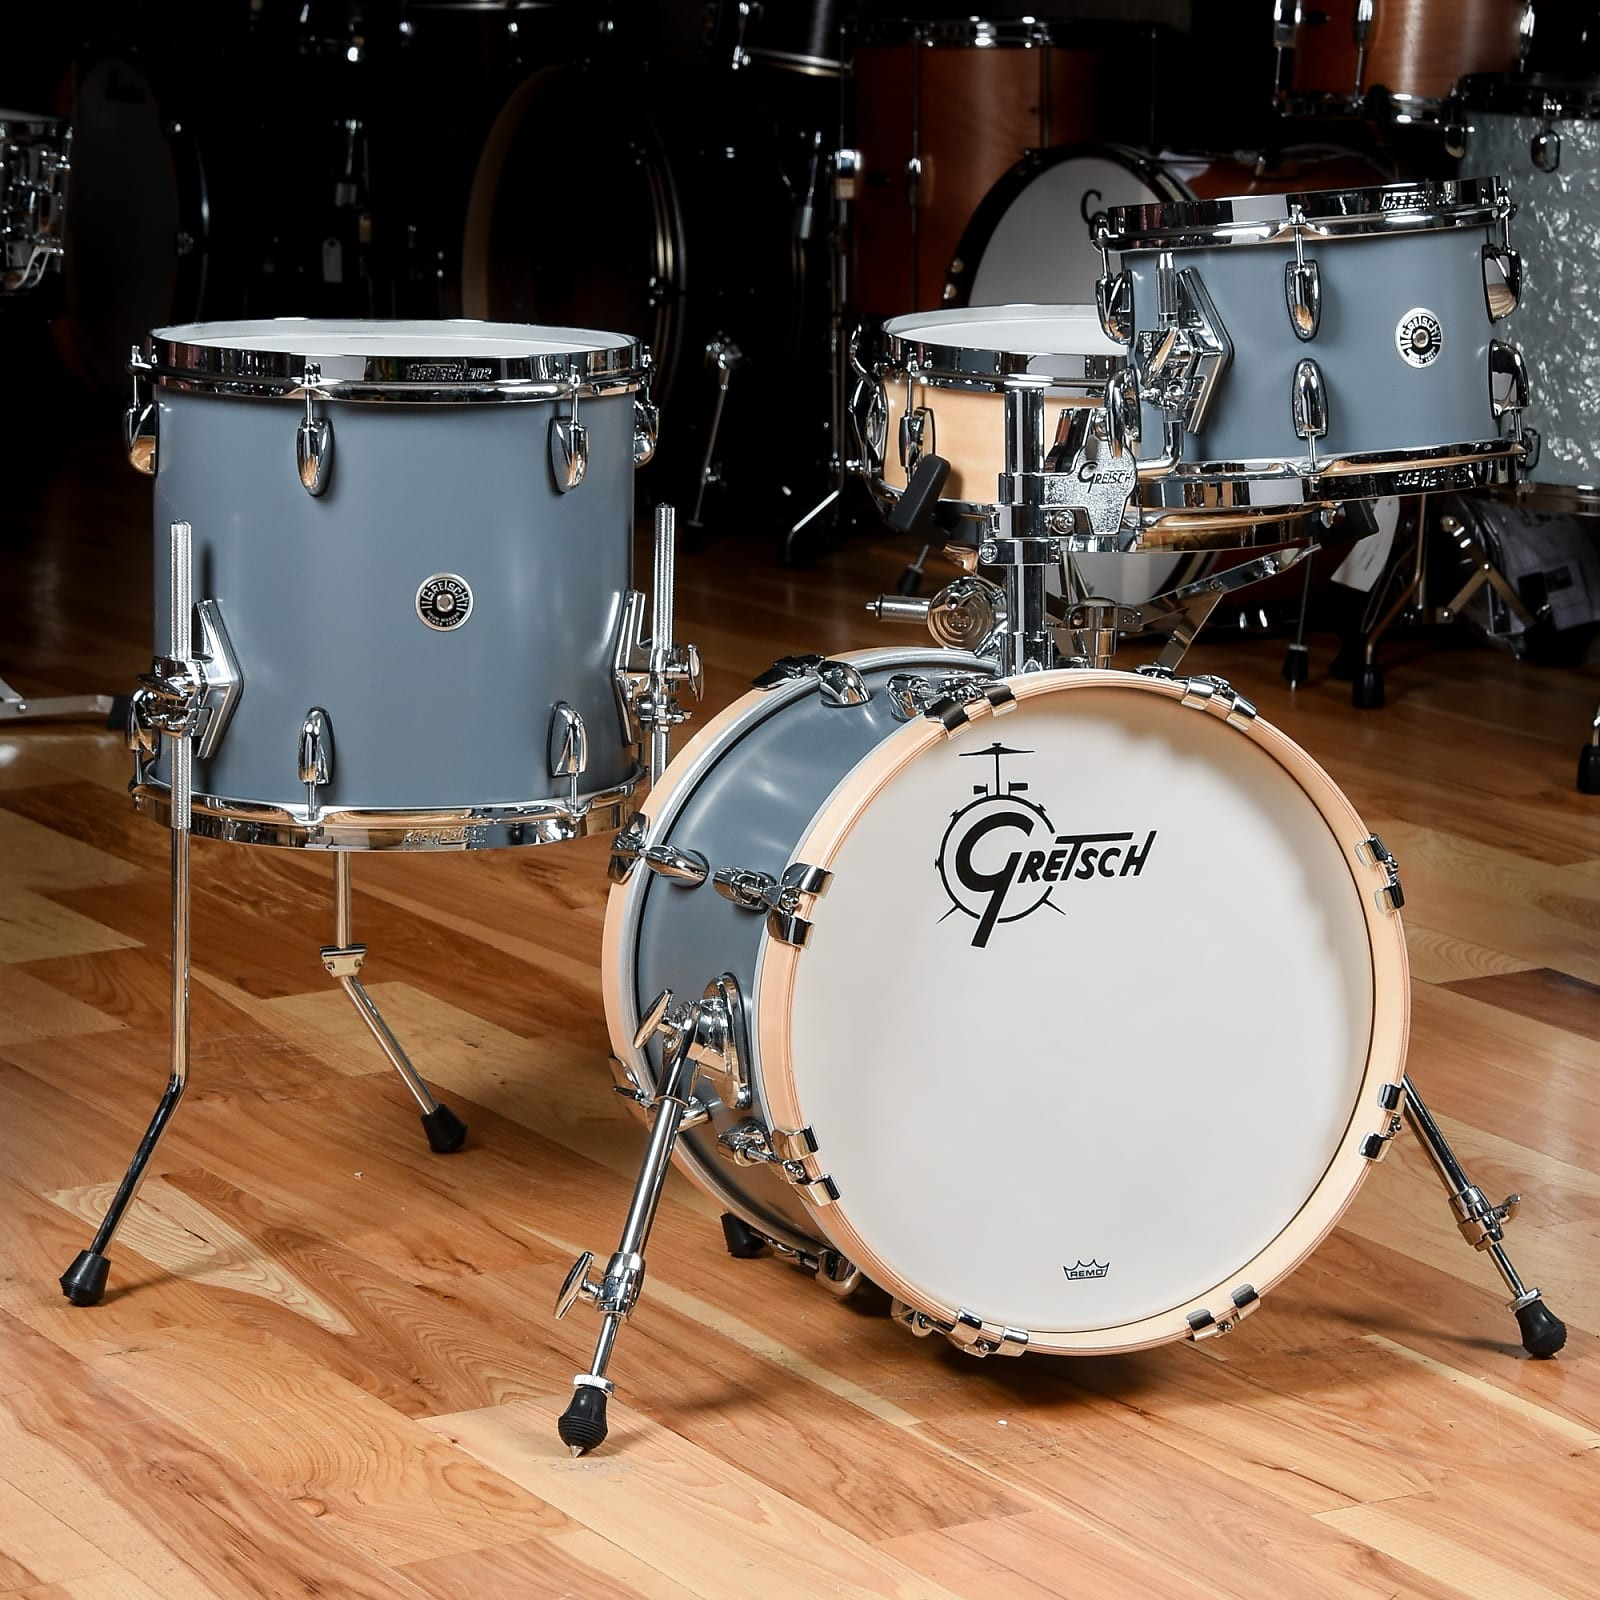 Viagem Ao Interior Da Gretsch, PDP & Latin Percussion [Vídeo]